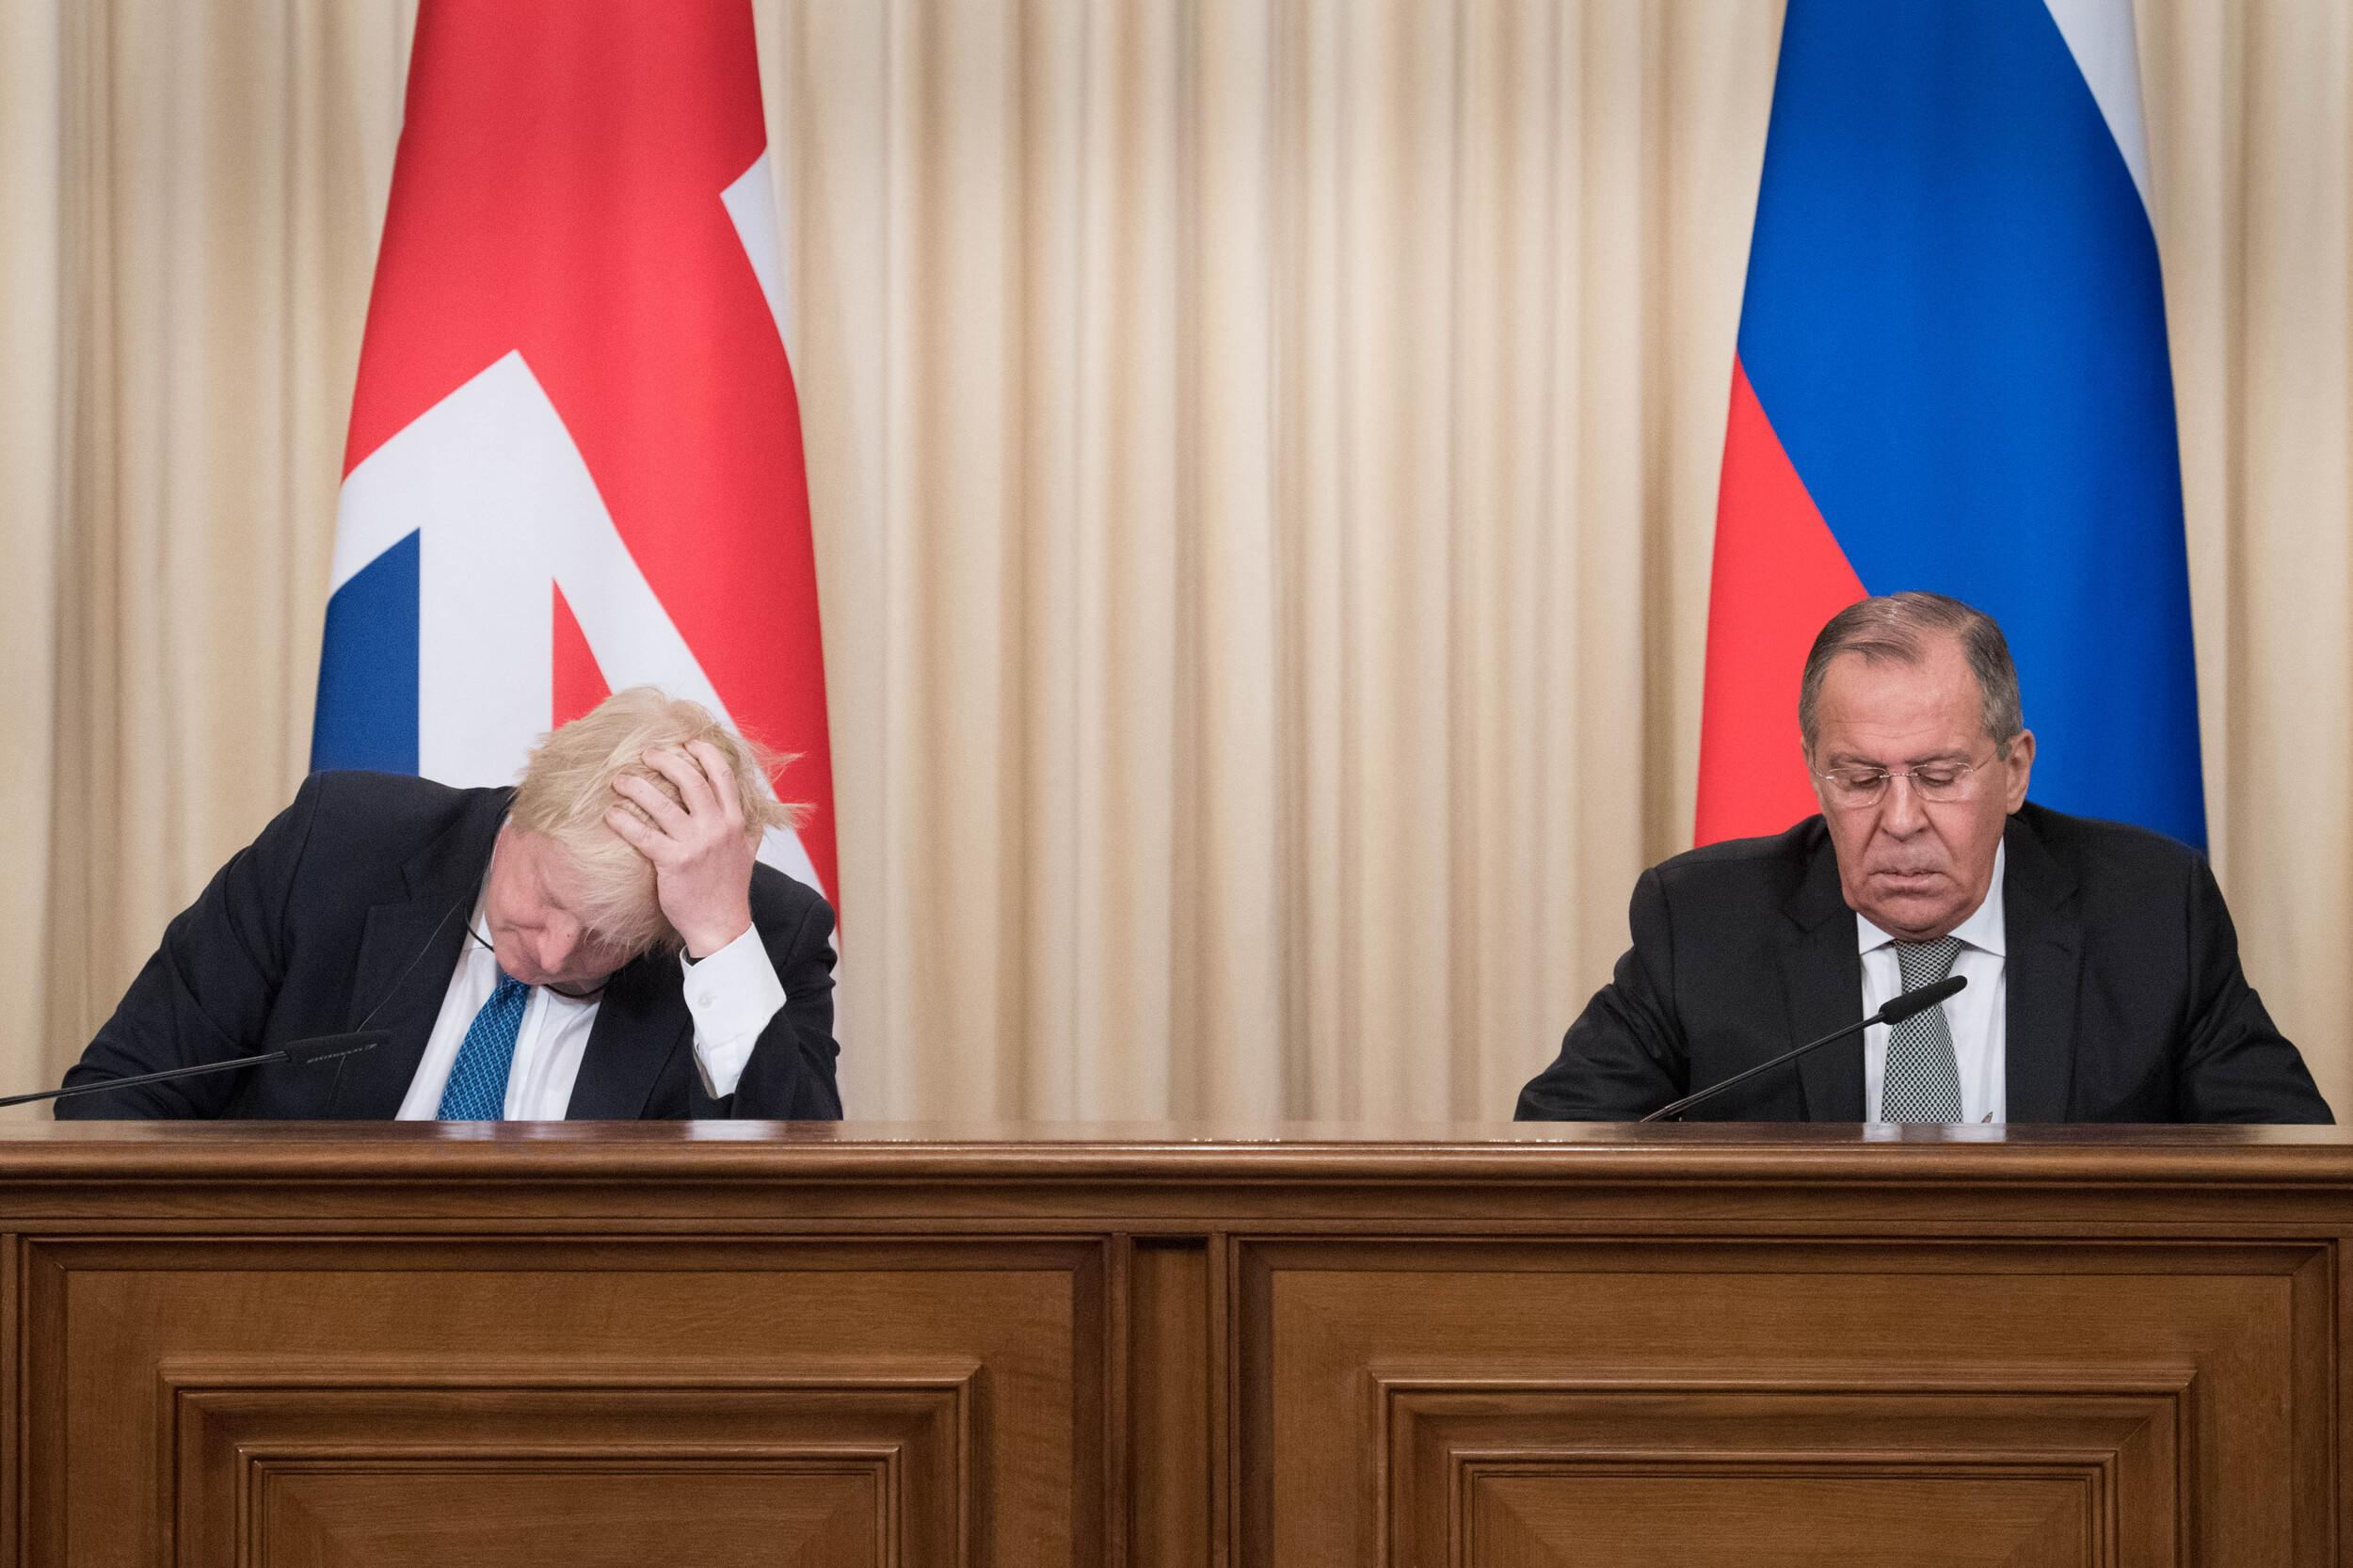 Foreign Secretary Boris Johnson (left) and his Russian counterpart Sergei Lavrov during a press conference following their meeting in Moscow.